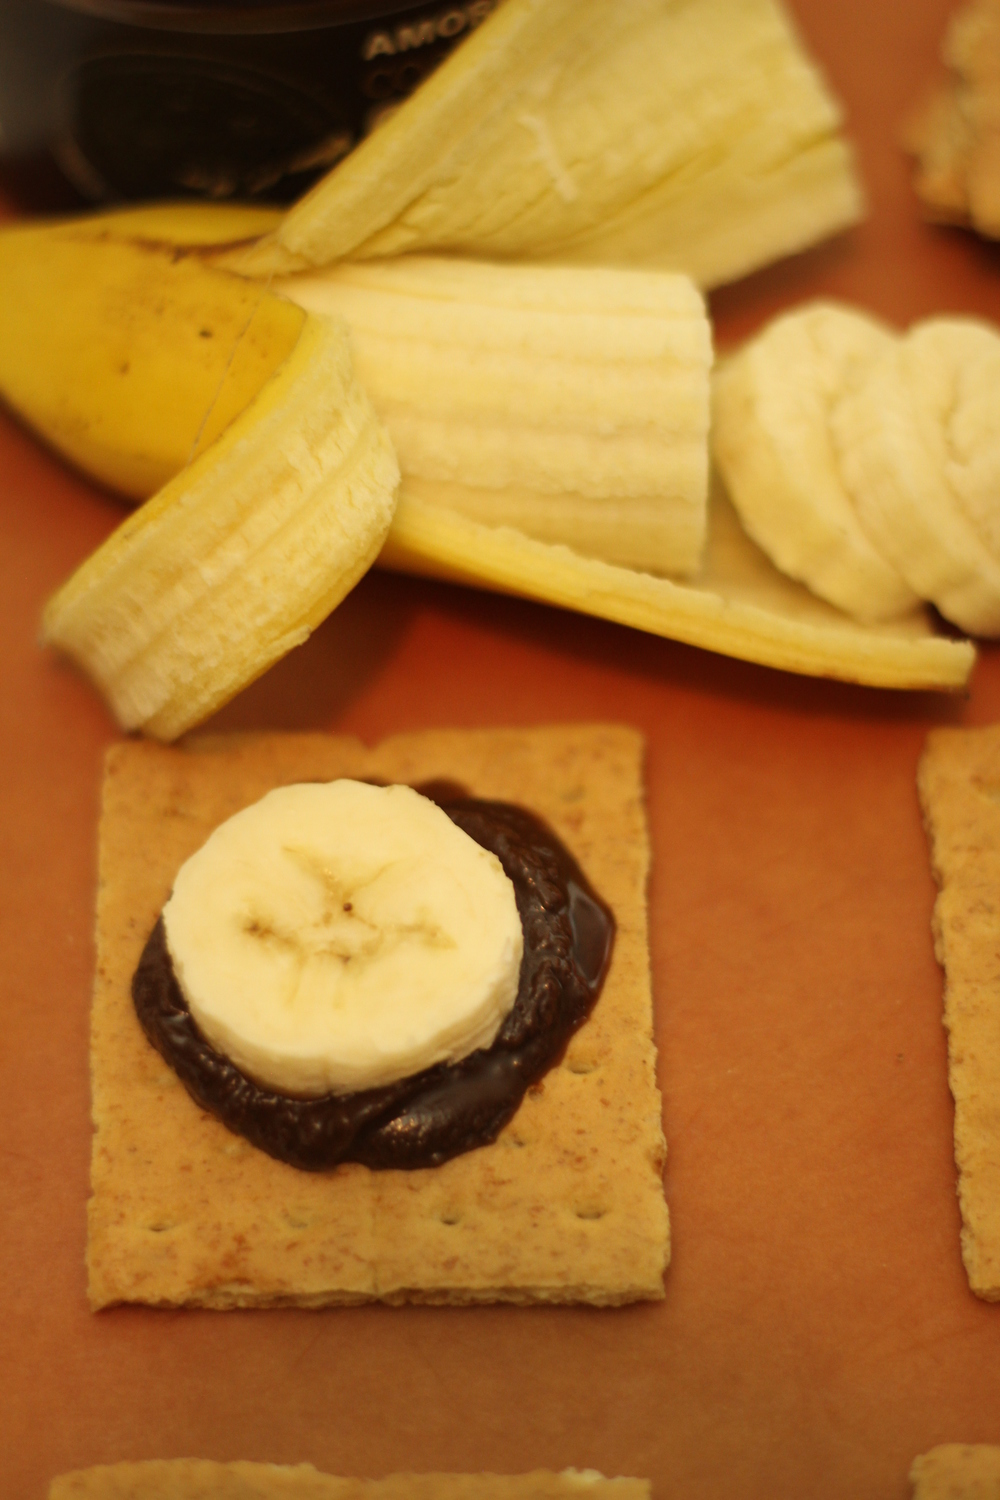 We love the combination of chocolate and bananas!